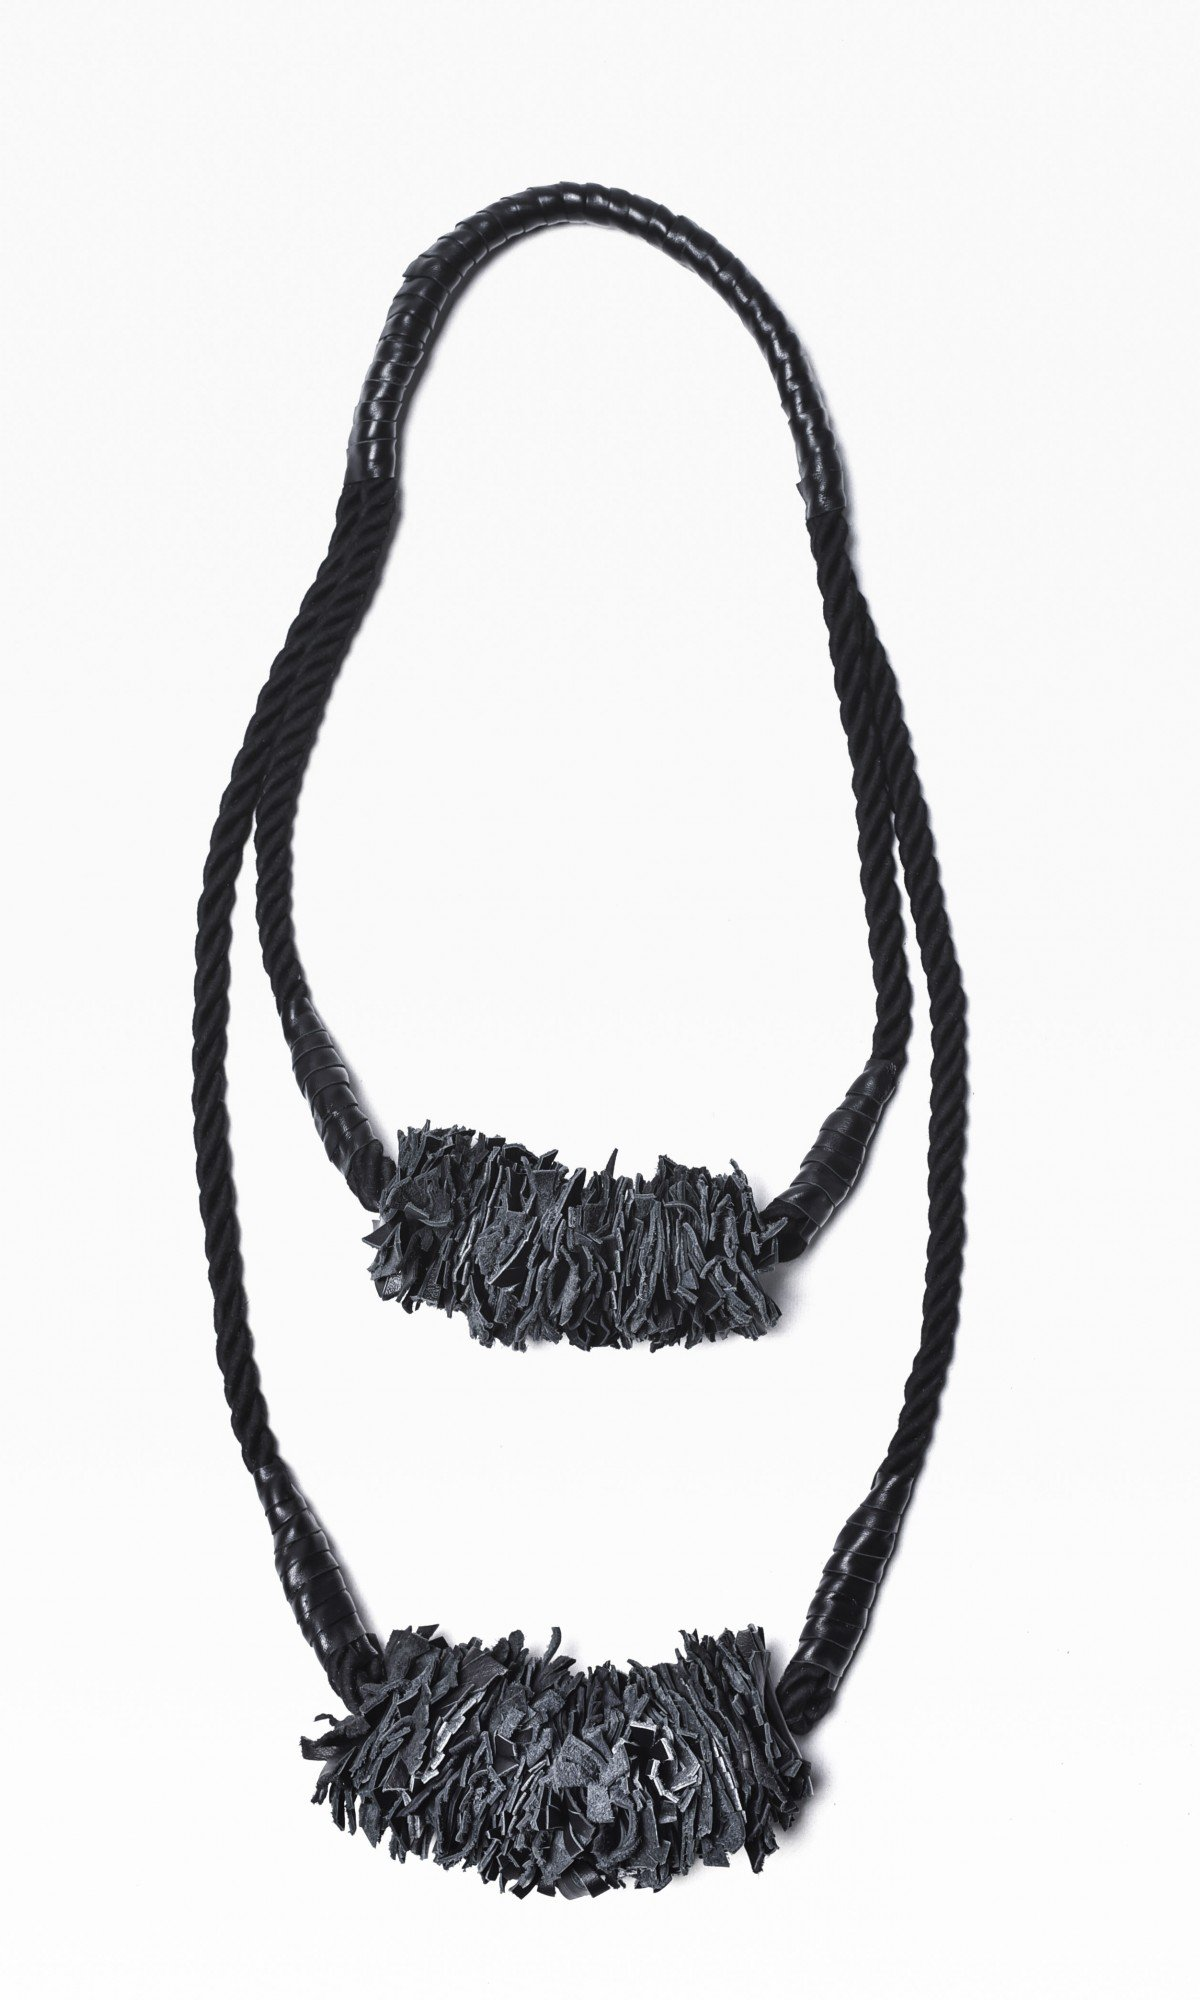 Black Rope and Genuine Leather Necklace A16376